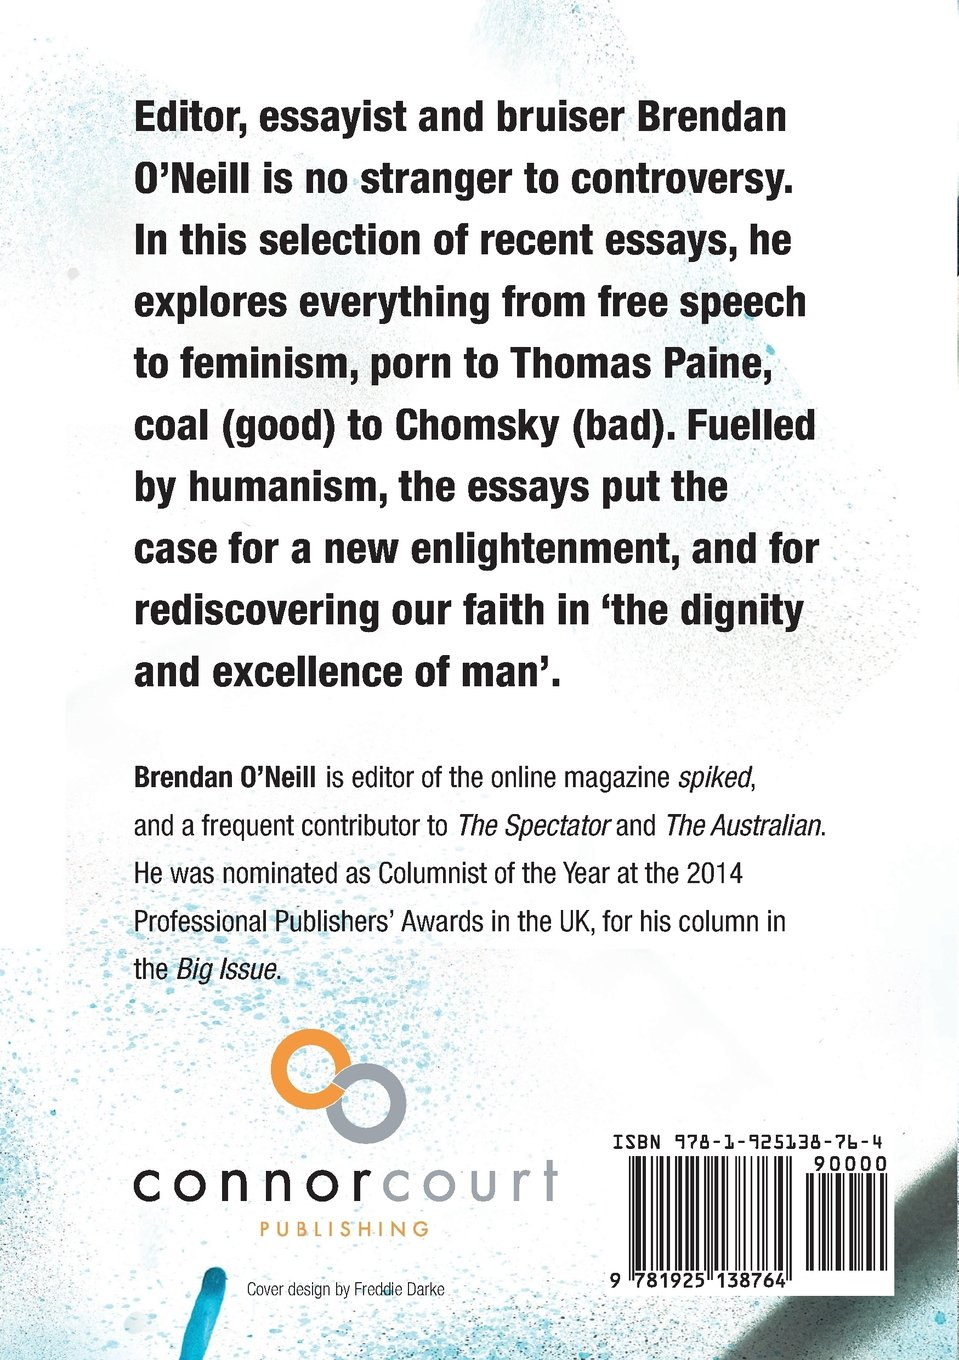 a duty to offend selected essays by brendan o neill brendan o a duty to offend selected essays by brendan o neill brendan o neill 9781925138764 com books